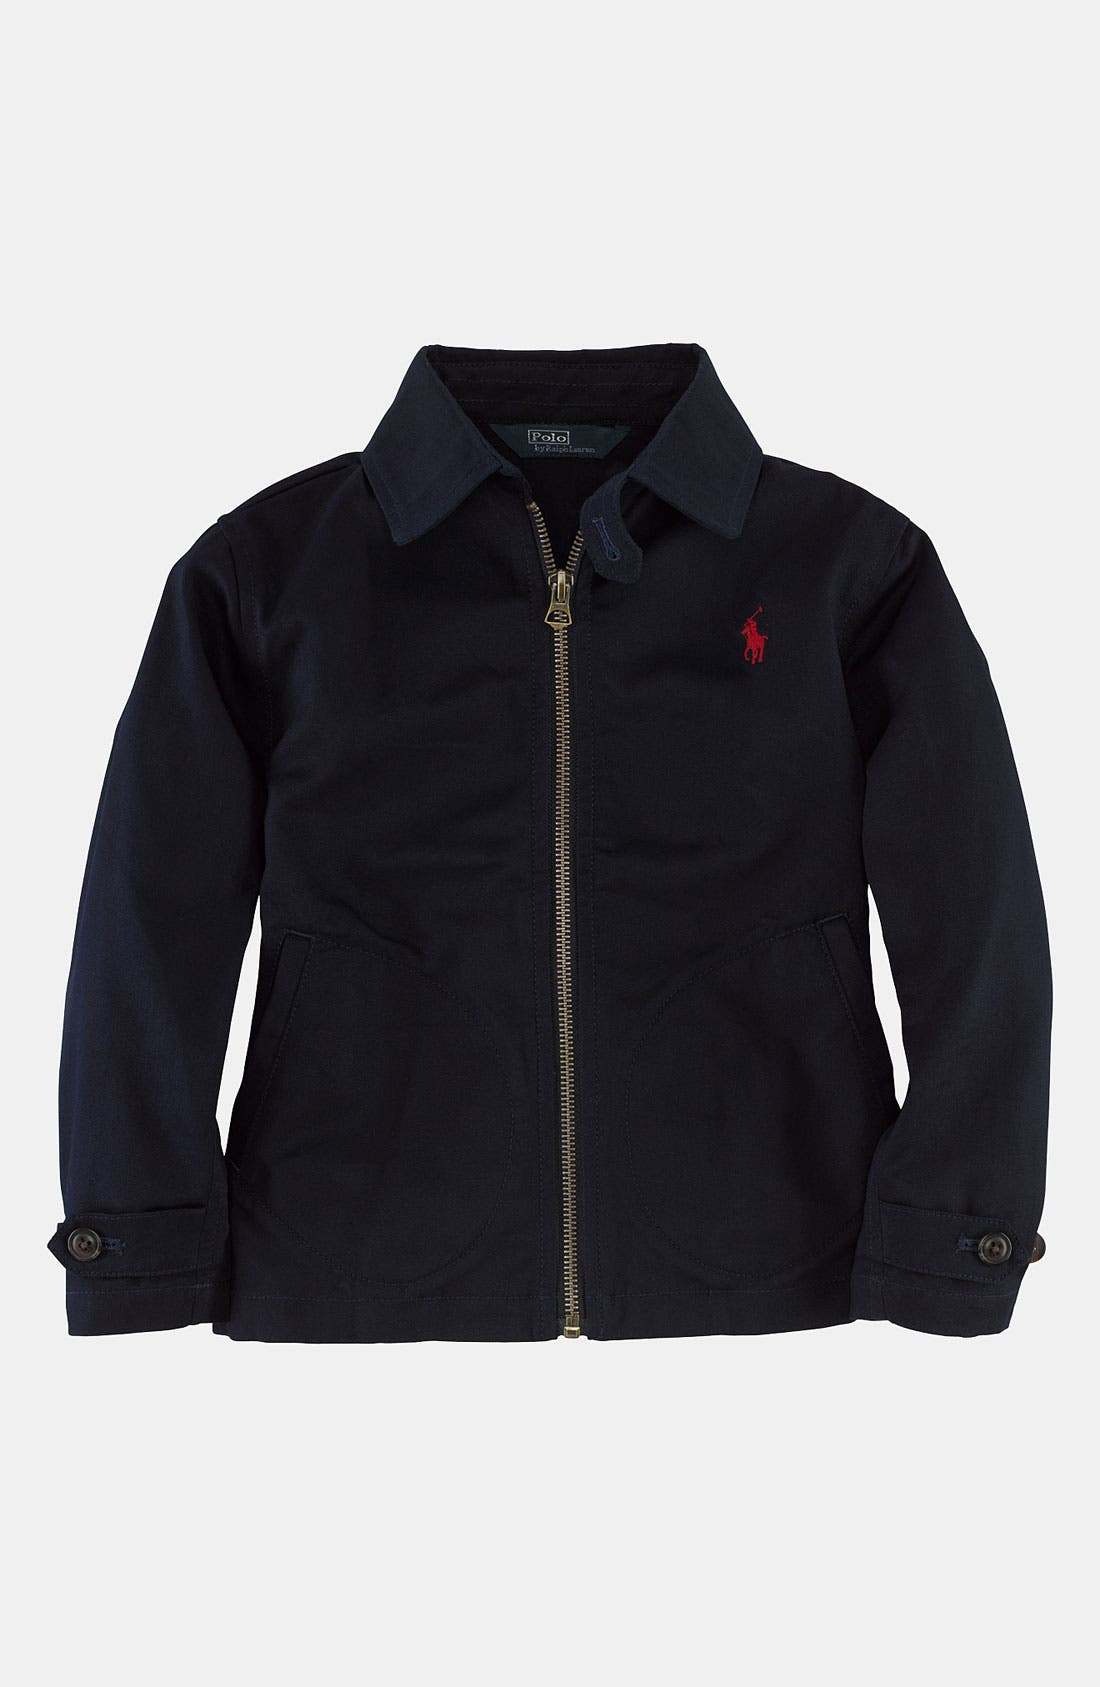 Main Image - Ralph Lauren Jacket (Toddler)